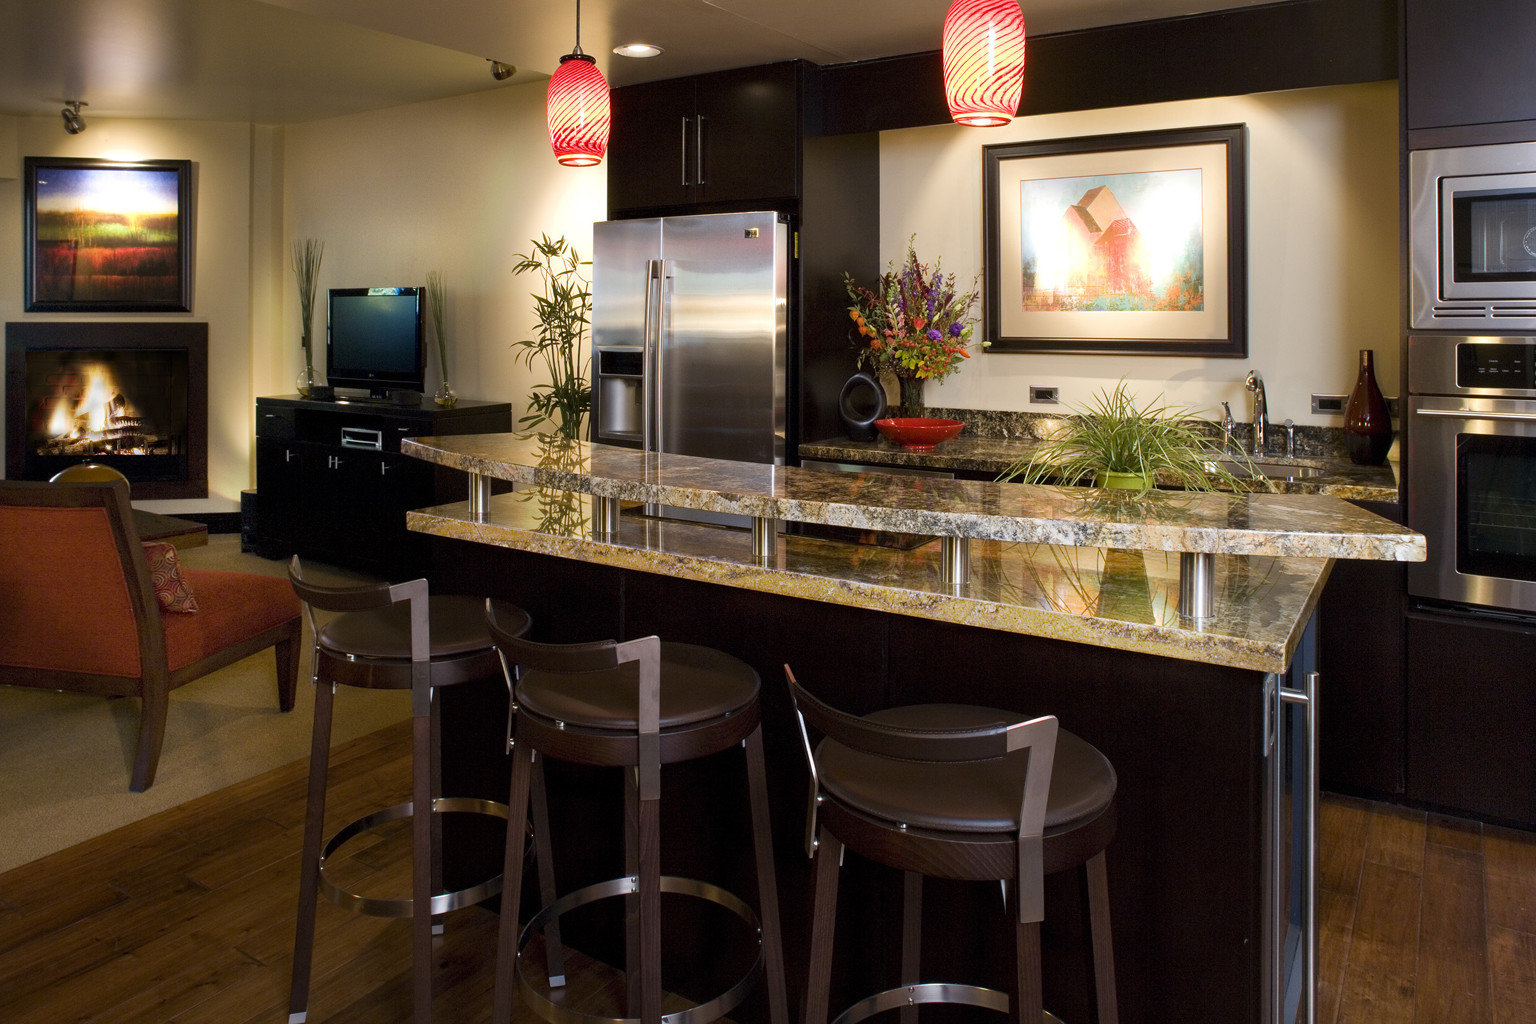 Bar Dining Drink Eat Luxury Modern property Kitchen home cabinetry countertop cuisine cottage living room Island